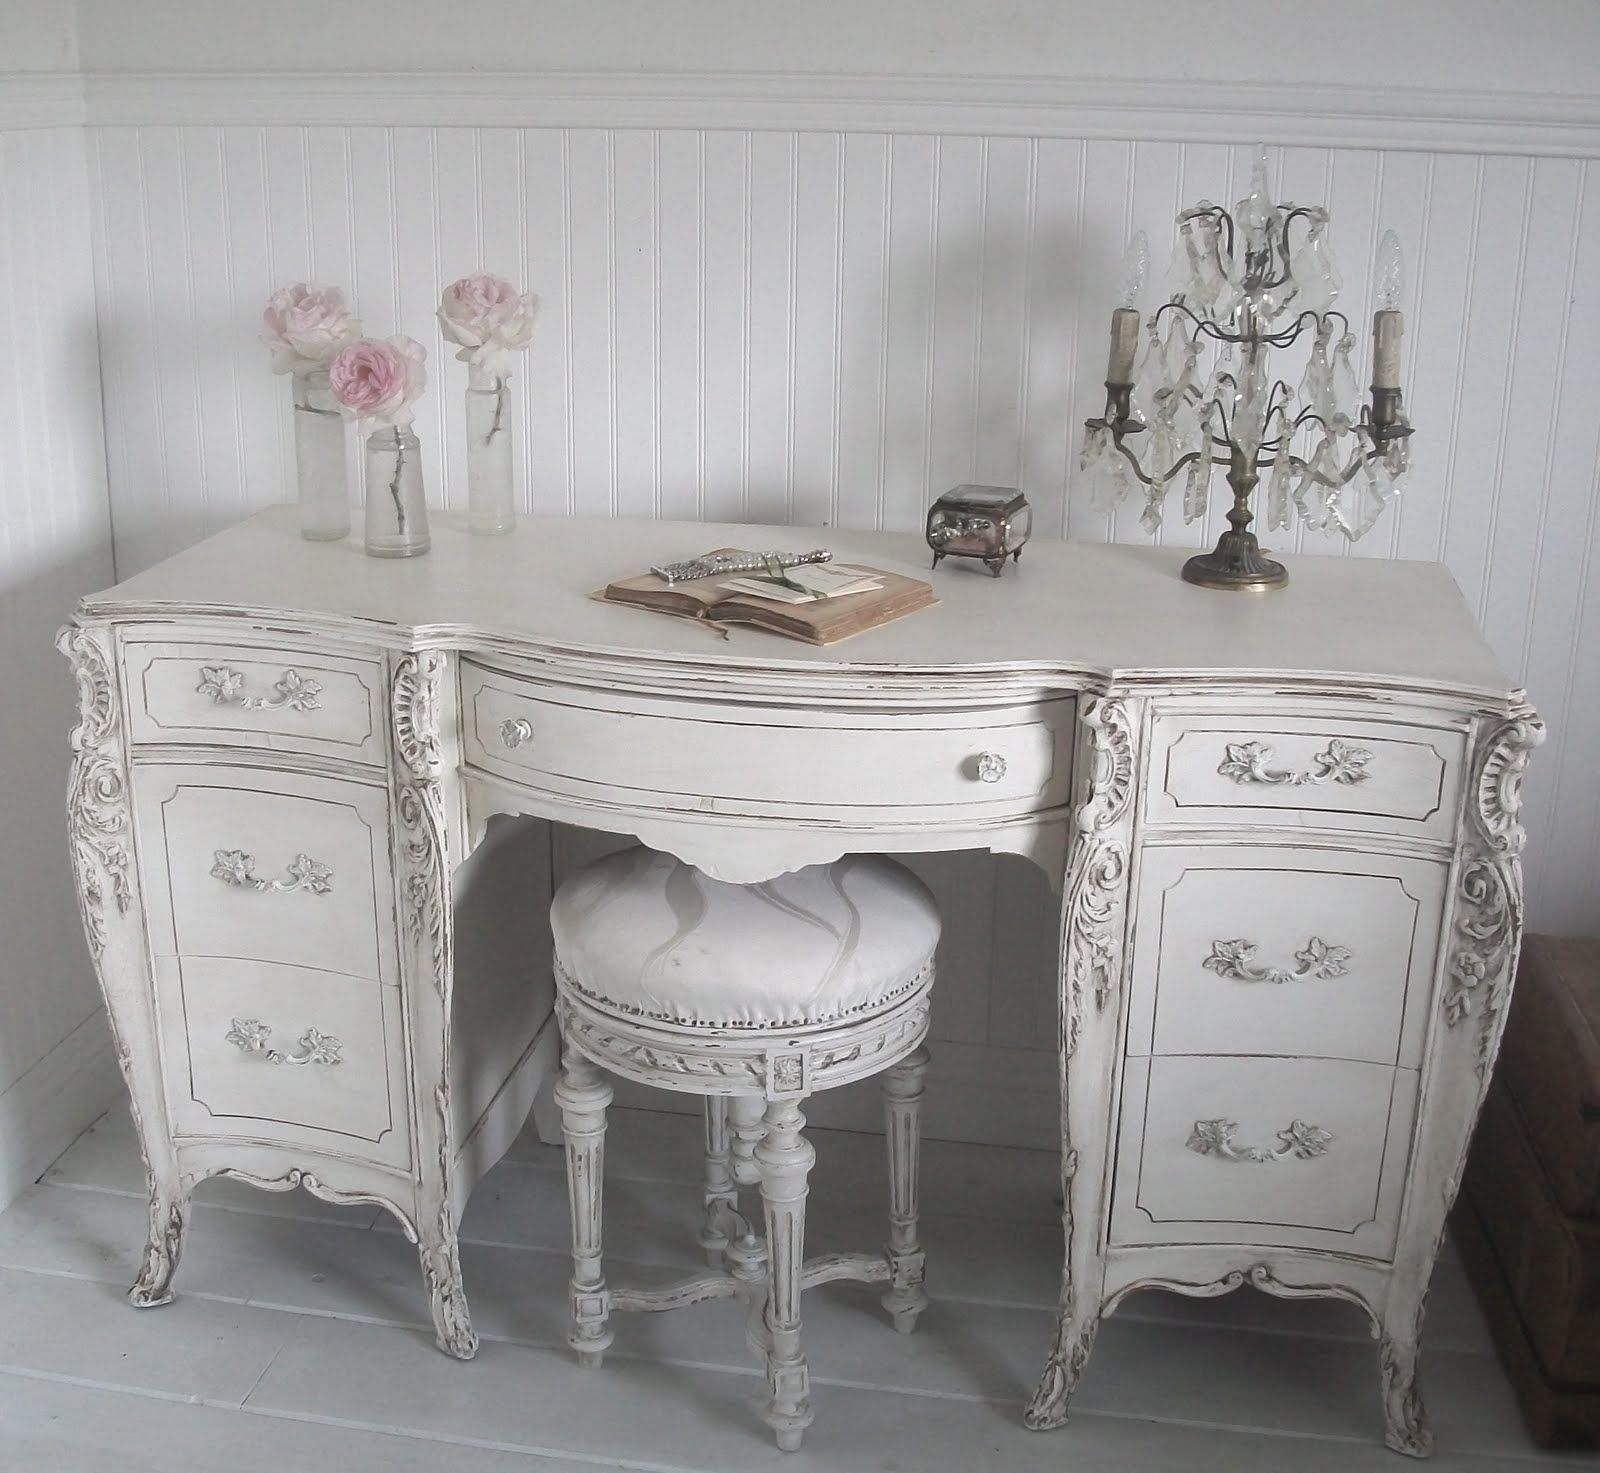 Shabby Chic Furniture: Full Bloom Cottage: French Furniture